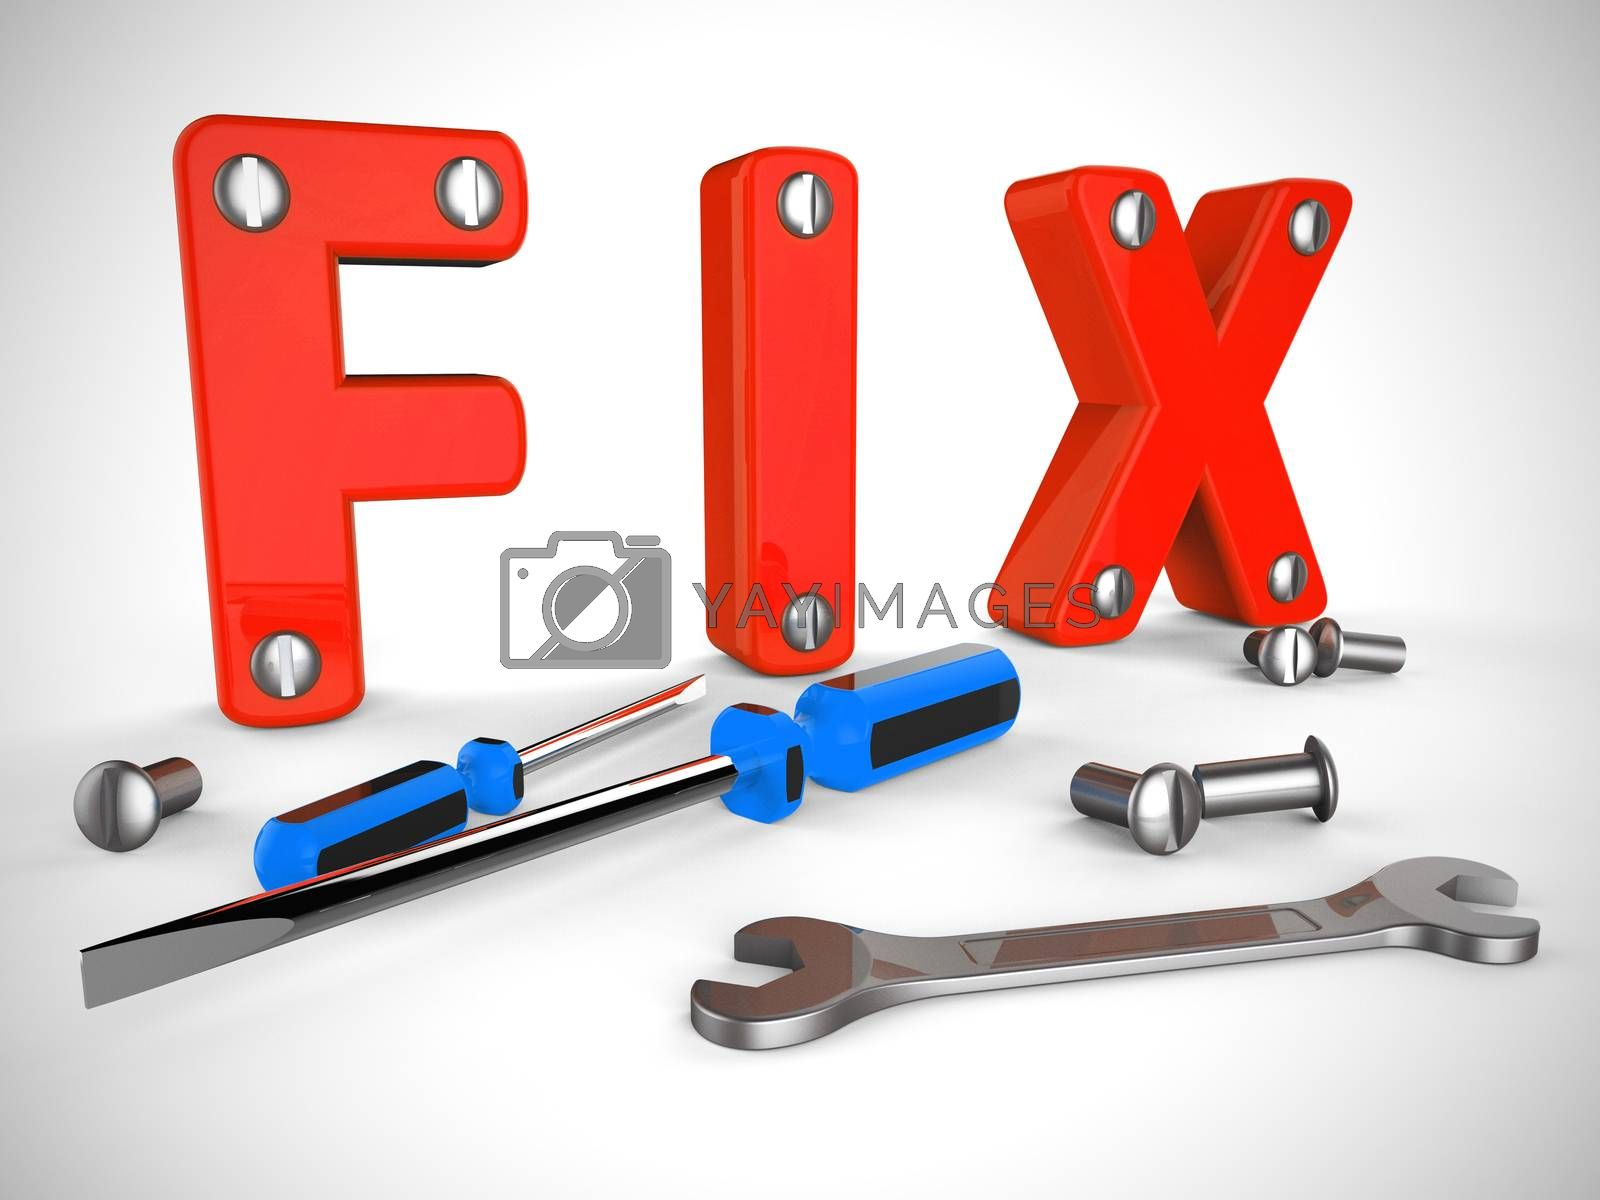 Pixel repair tools mean mending or patching a problem. Reconstruction or overhaul for improvement - 3d illustration